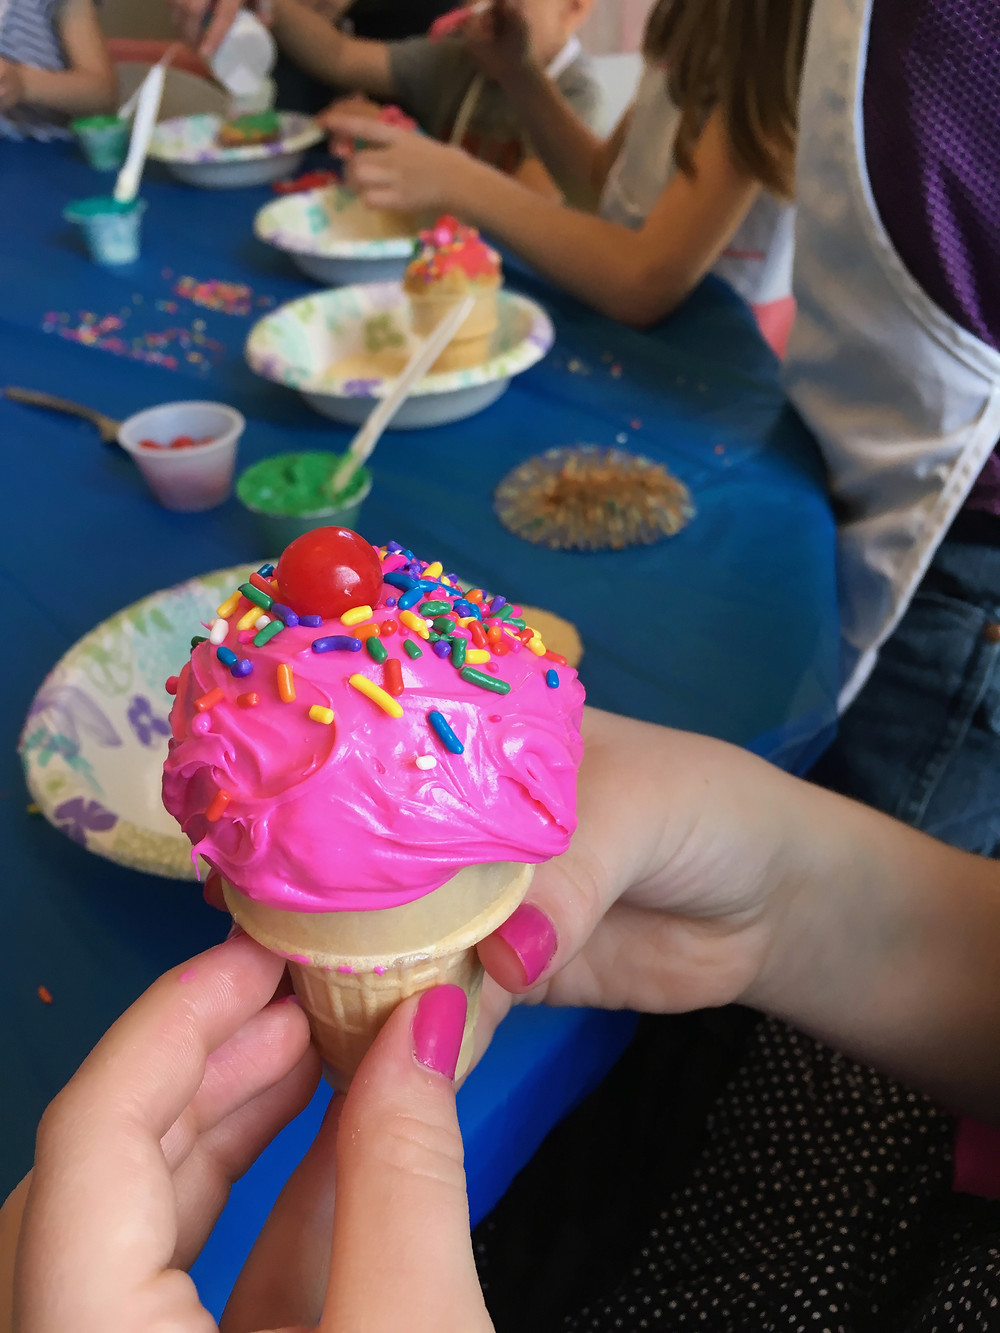 Manicured dainty fingers hold a sweet celebration specialty cupcake cone at a baking party!